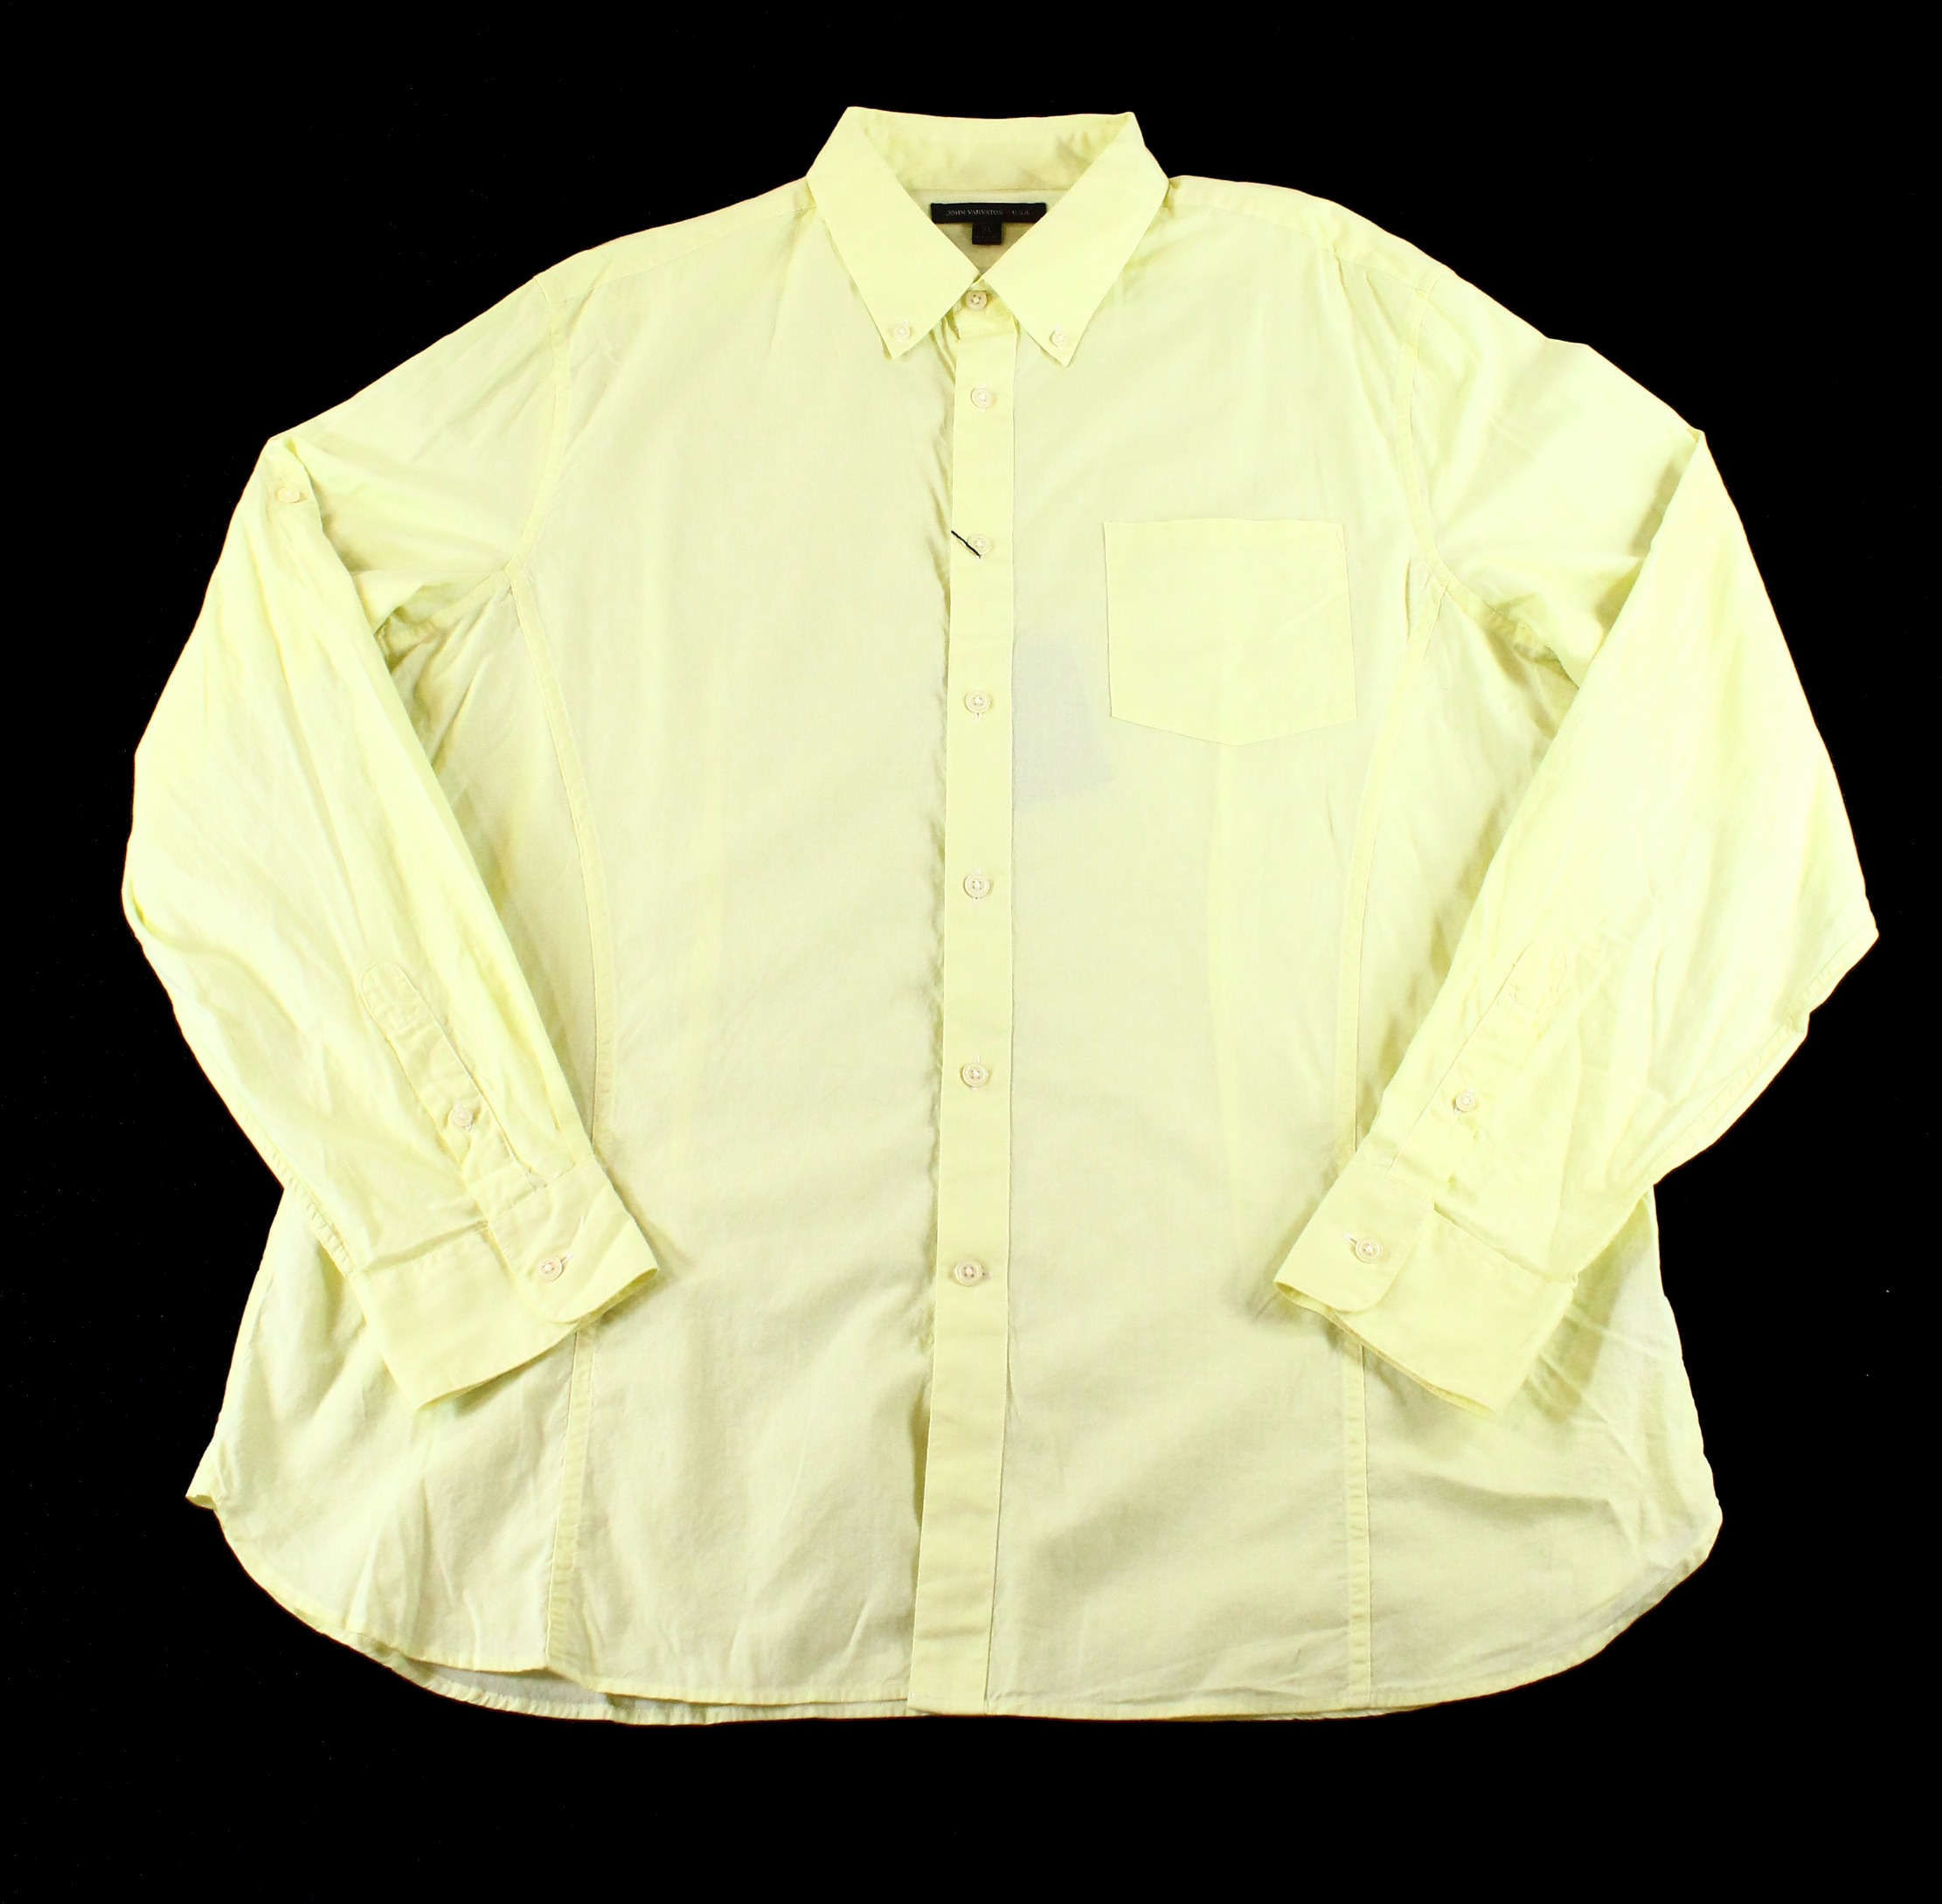 John Varvatos NEW Yellow Mens Size XL Solid Pocket Button-Front Shirt $98 DEAL